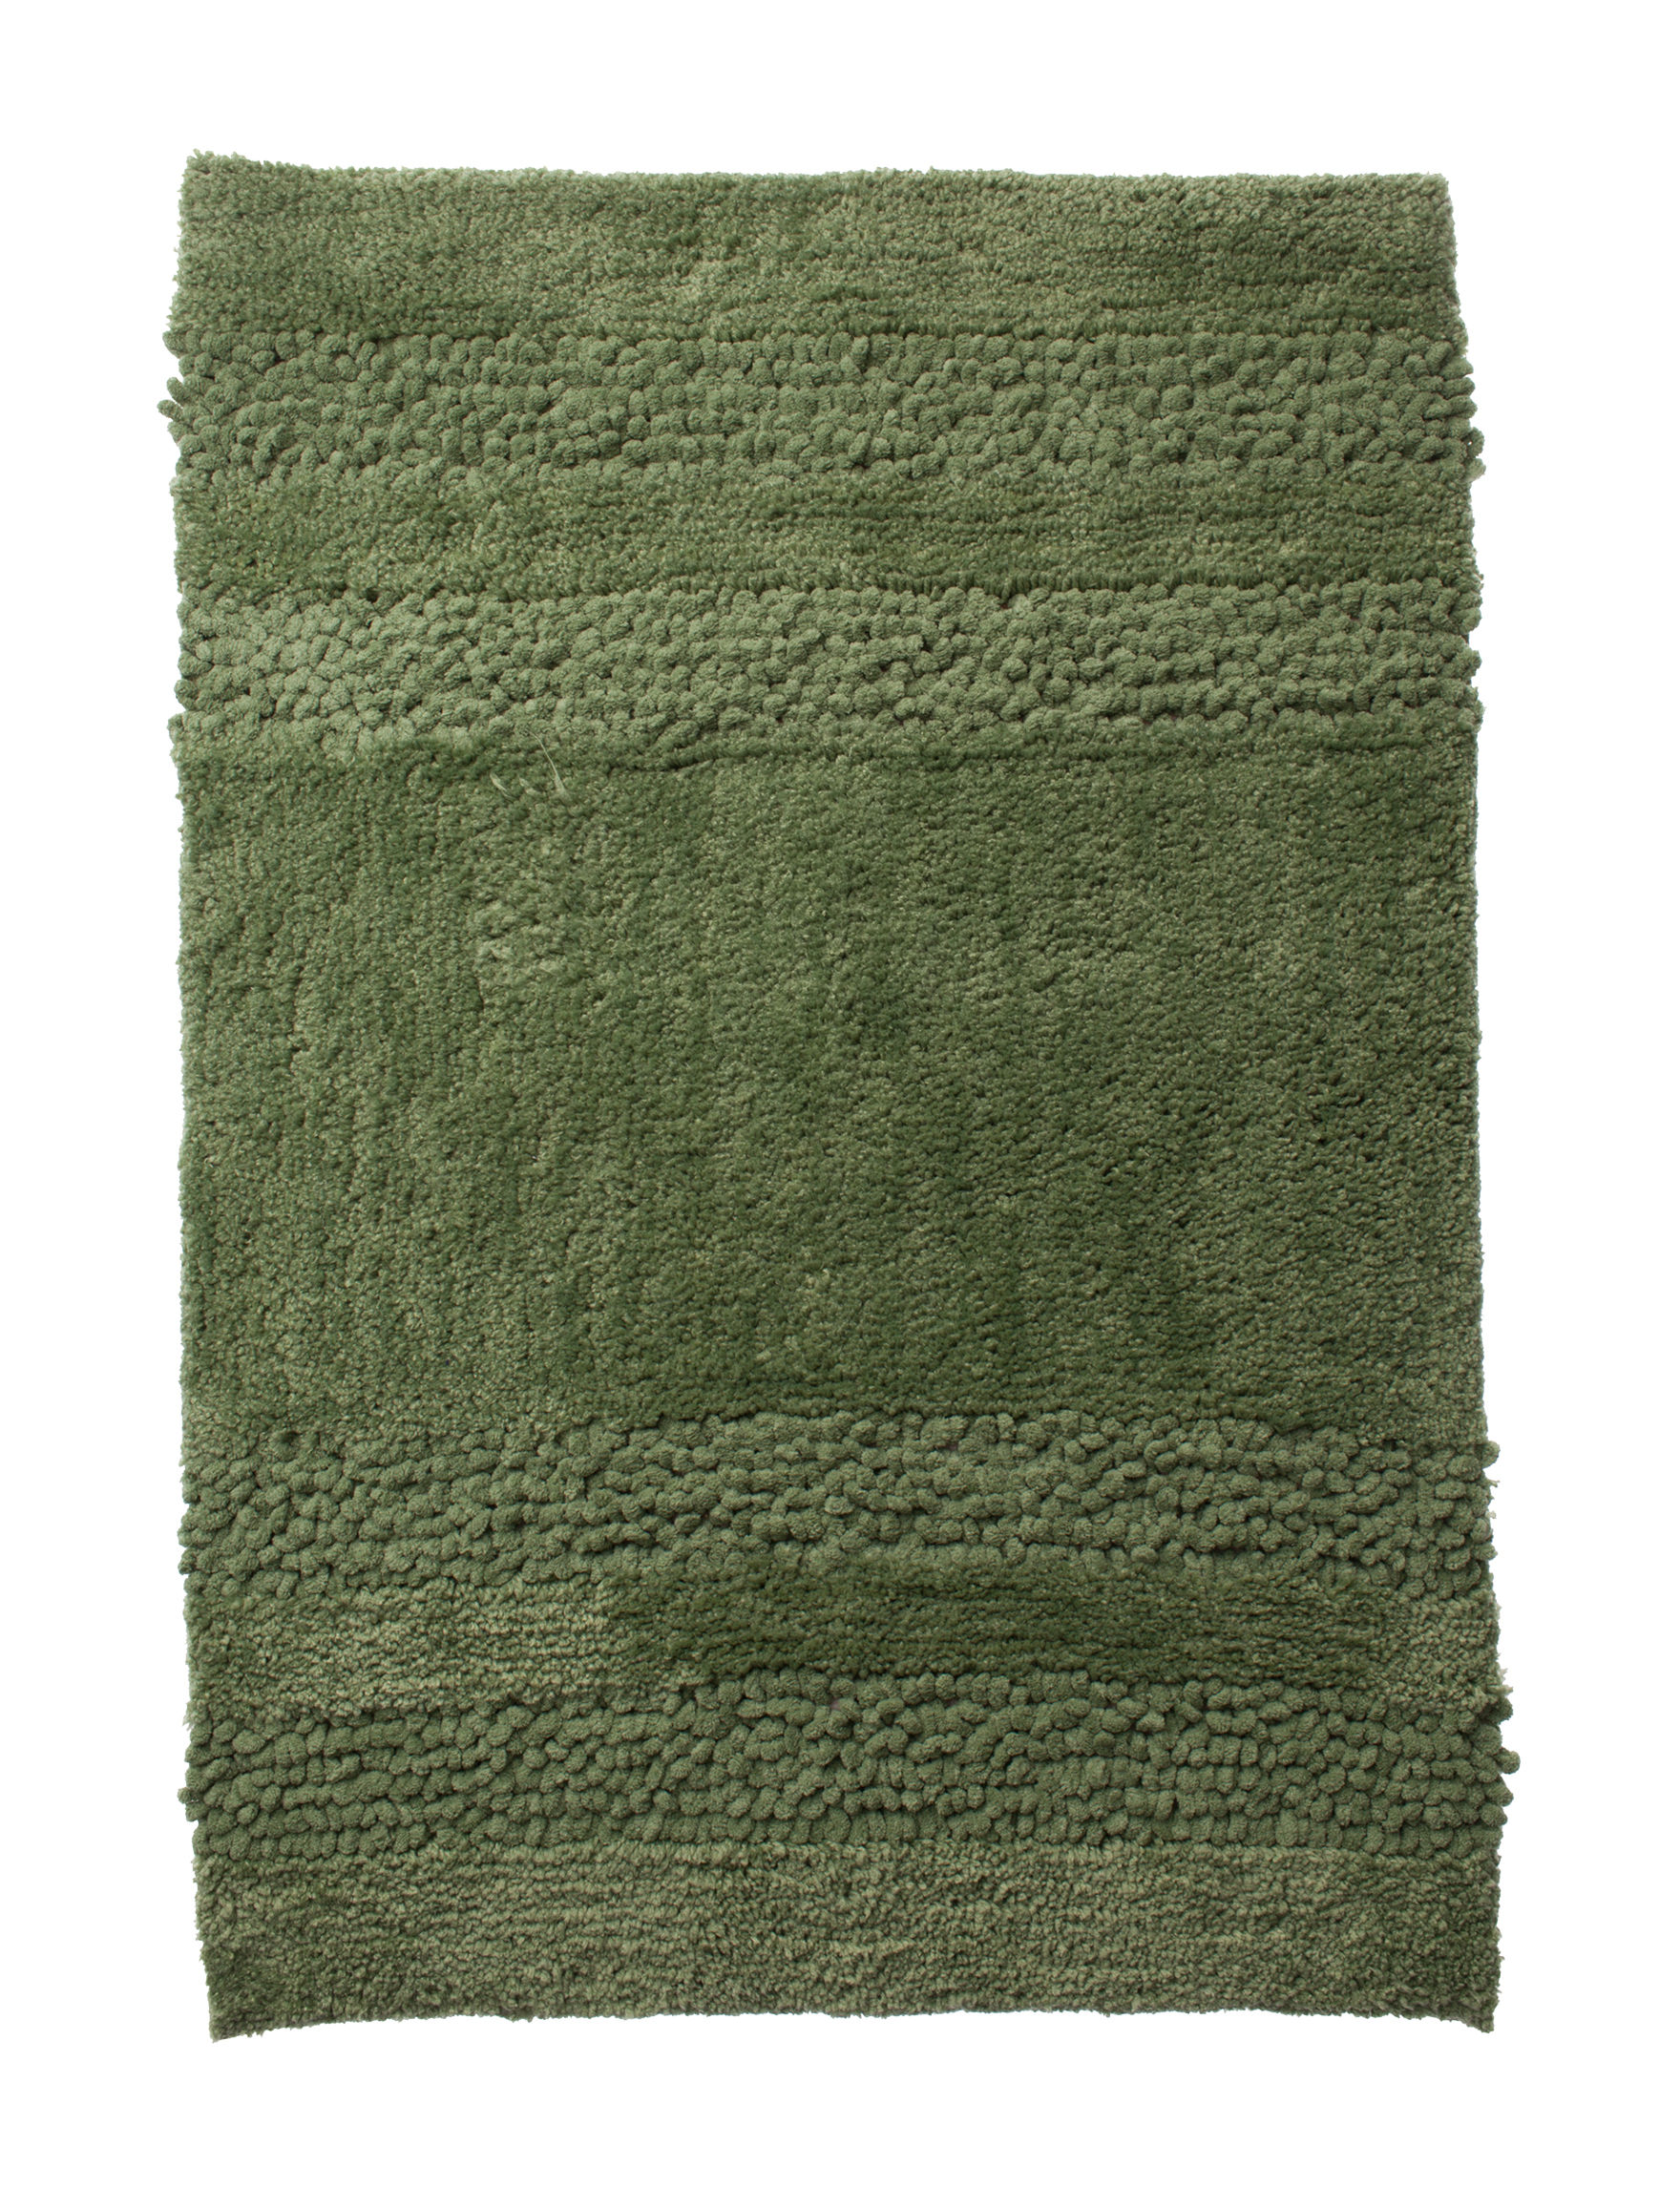 Great Hotels Collection Green Bath Rugs & Mats